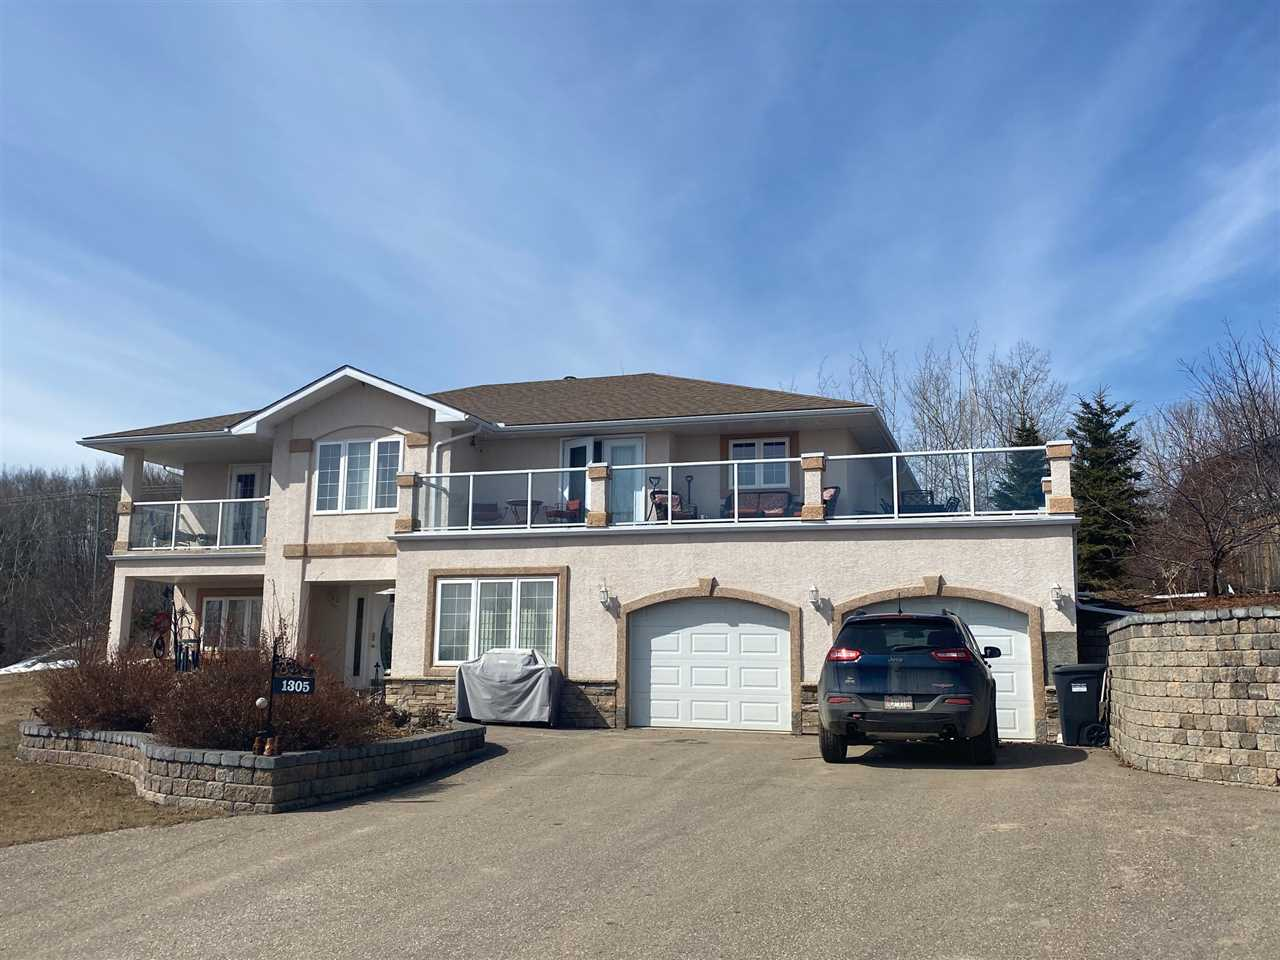 Lovely home at the end of a cul-de-sac! Sitting on a 1/2 acre landscaped lot on the slope while enjoying the views of Cold Lake! This custom built Glenwall home lends well to it's environment, the main floor living area is hardwood and tile that over looks the deck on the front of the house enjoying the lake. The efficient kitchen layout has plenty of cabinets, counter space, island and pantry, the dining area opens onto the deck, living room is open to both while down the hall you have access to the back yard, the laundry room, 2 bedrooms and a private master suite with it's own deck, his and her walk through closets to the ensuite with oversized shower, 2 person Jacuzzi tub, and double sinks. The lower entry level provides the welcoming foyer, rec room, family room, full bath, 2 additional bedrooms and access to the heated attached garage. The large retaining wall adds curb appeal and the paved driveway gives plenty of parking. The rear detached garage has room for the toys right next to the RV parking.